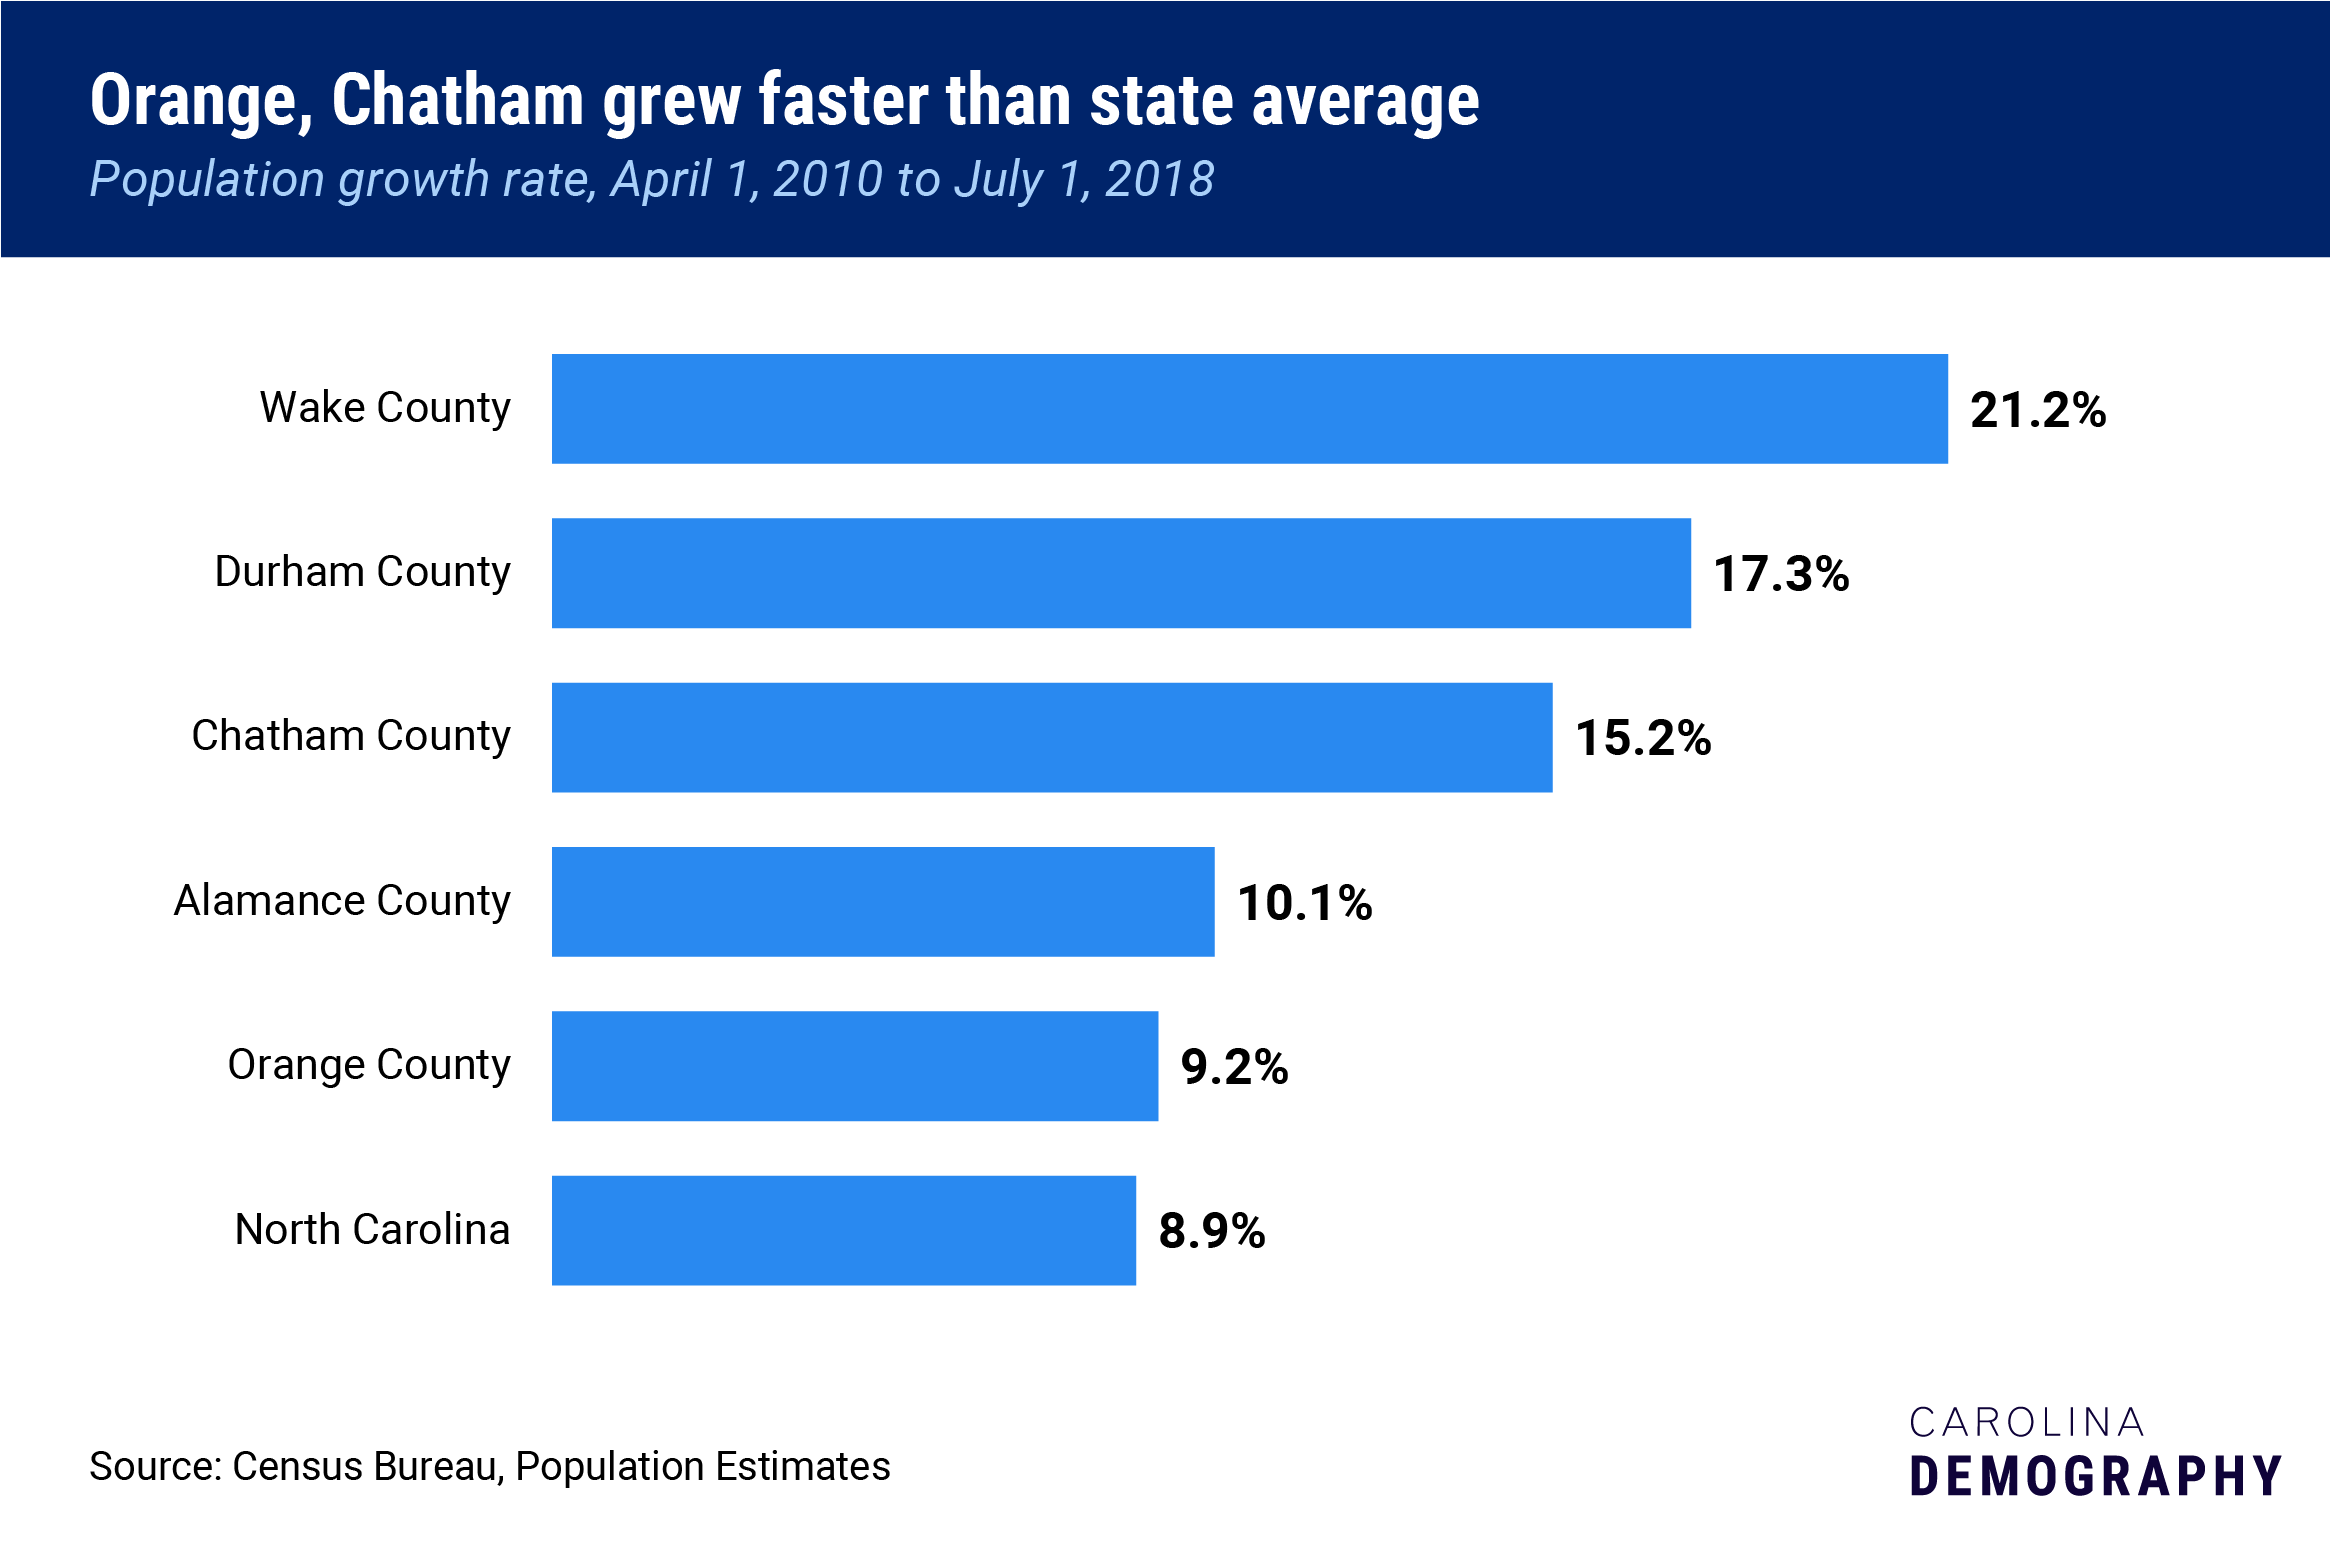 Orange, Chatham grew faster than state average, Population growth rate, April 1, 2010 to July 1, 2018